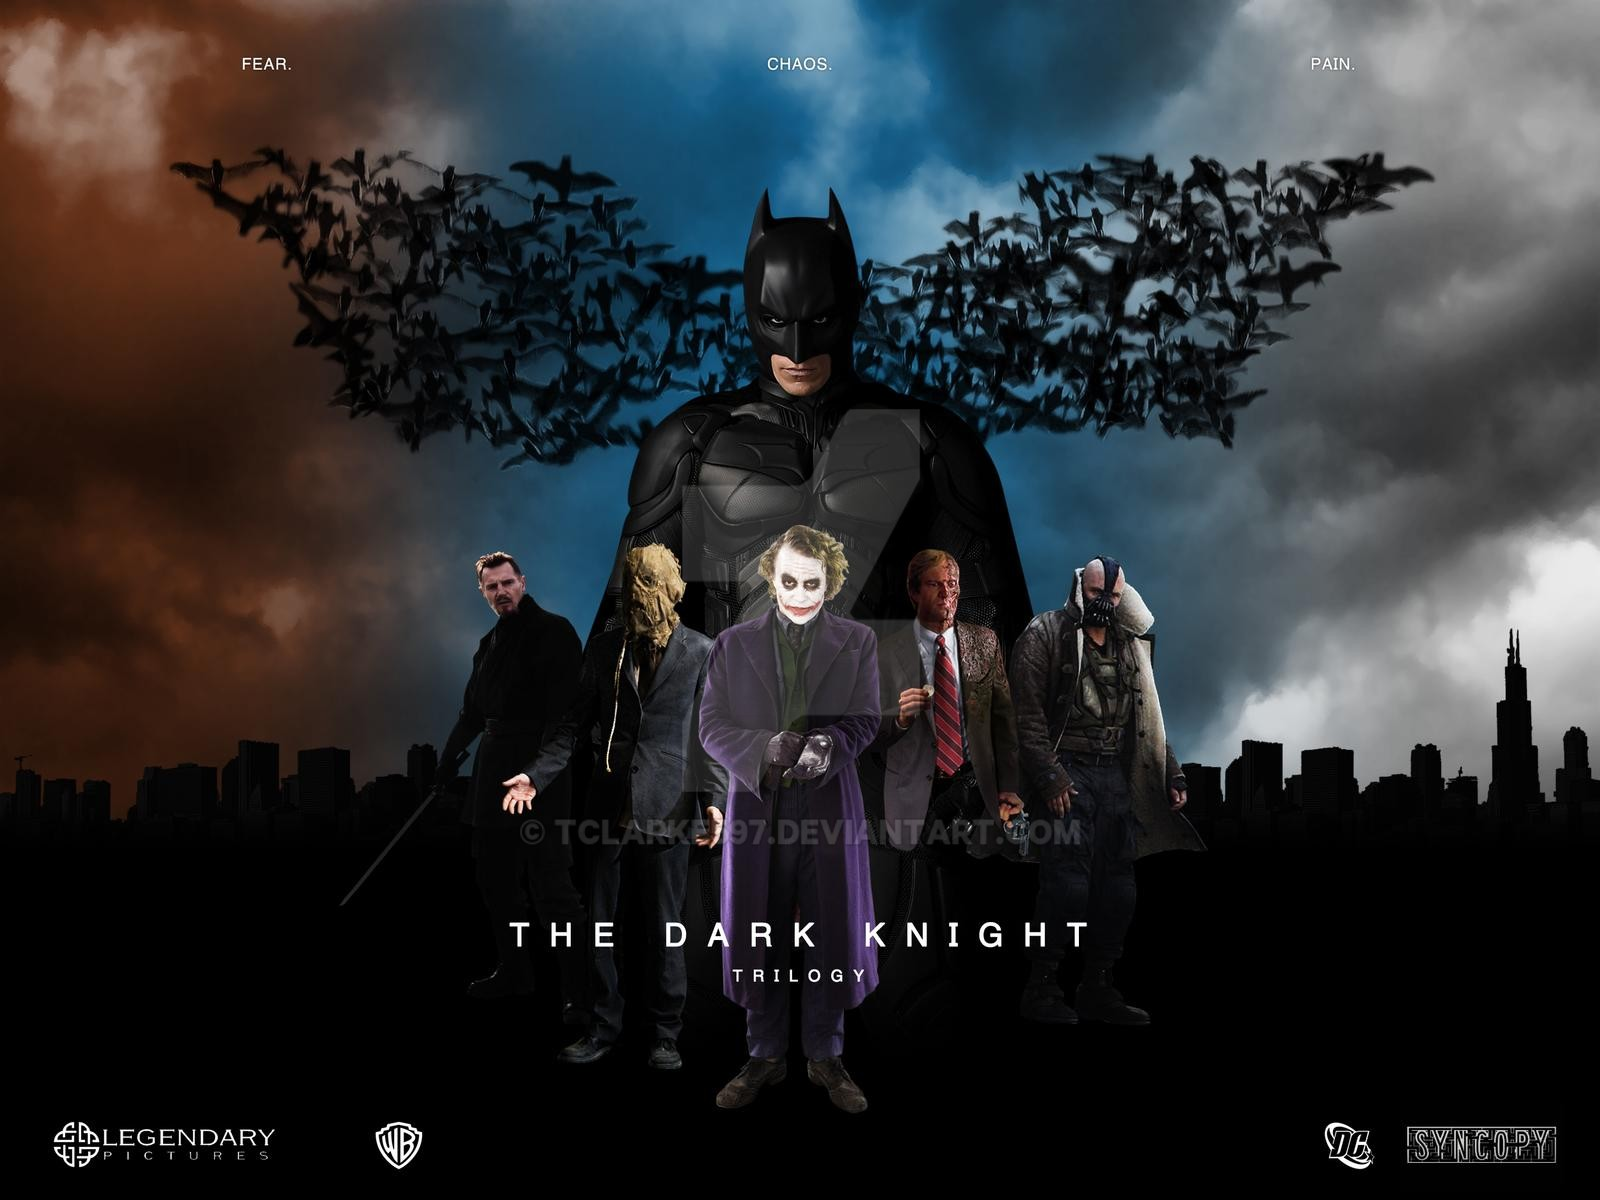 Dark Knight Trilogy Wallpaper Posted By Michelle Peltier